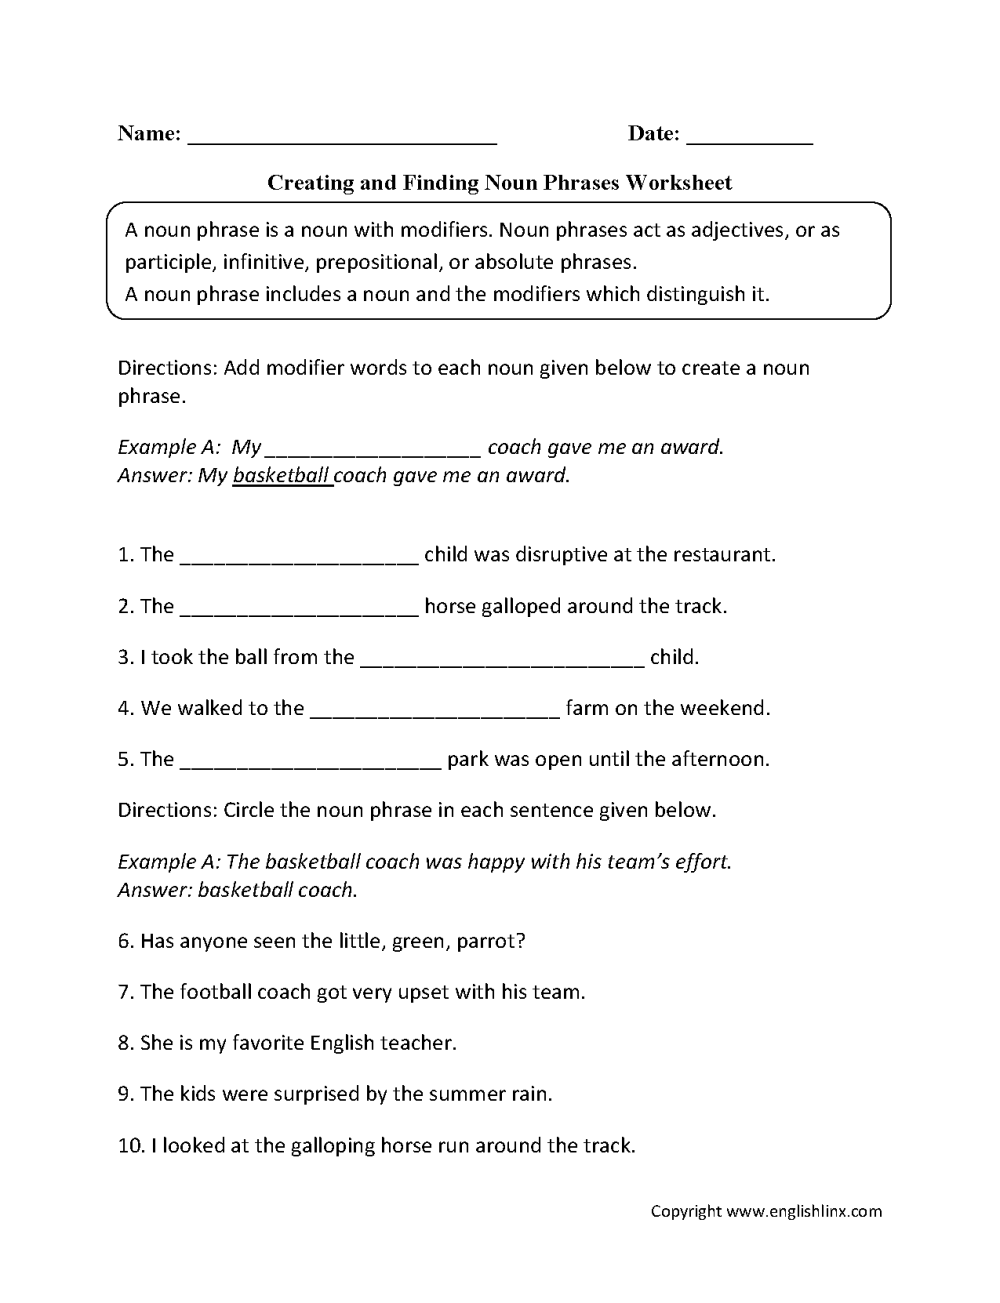 medium resolution of Nouns Worksheets   Noun Phrases Worksheets